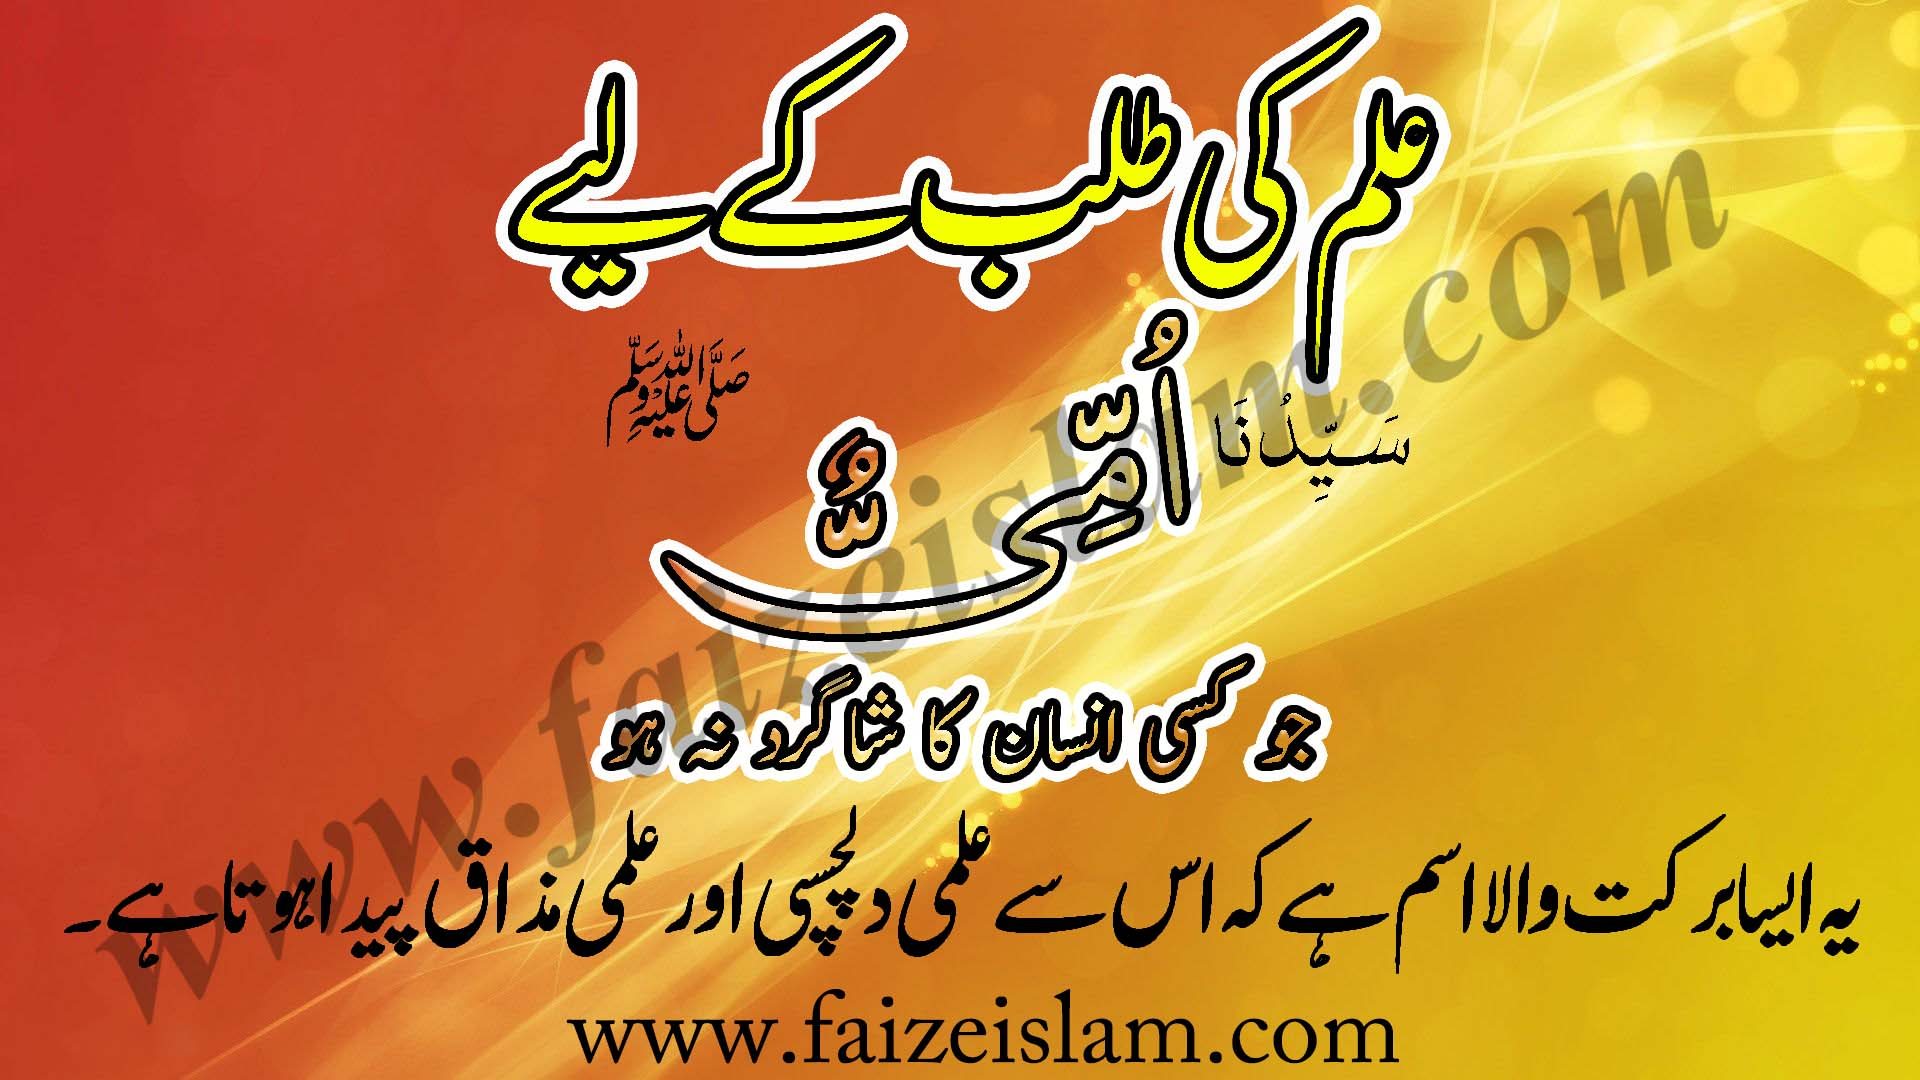 Wazifa for Education - Ilm ki Talab Kay Liye Wazifa In Urdu